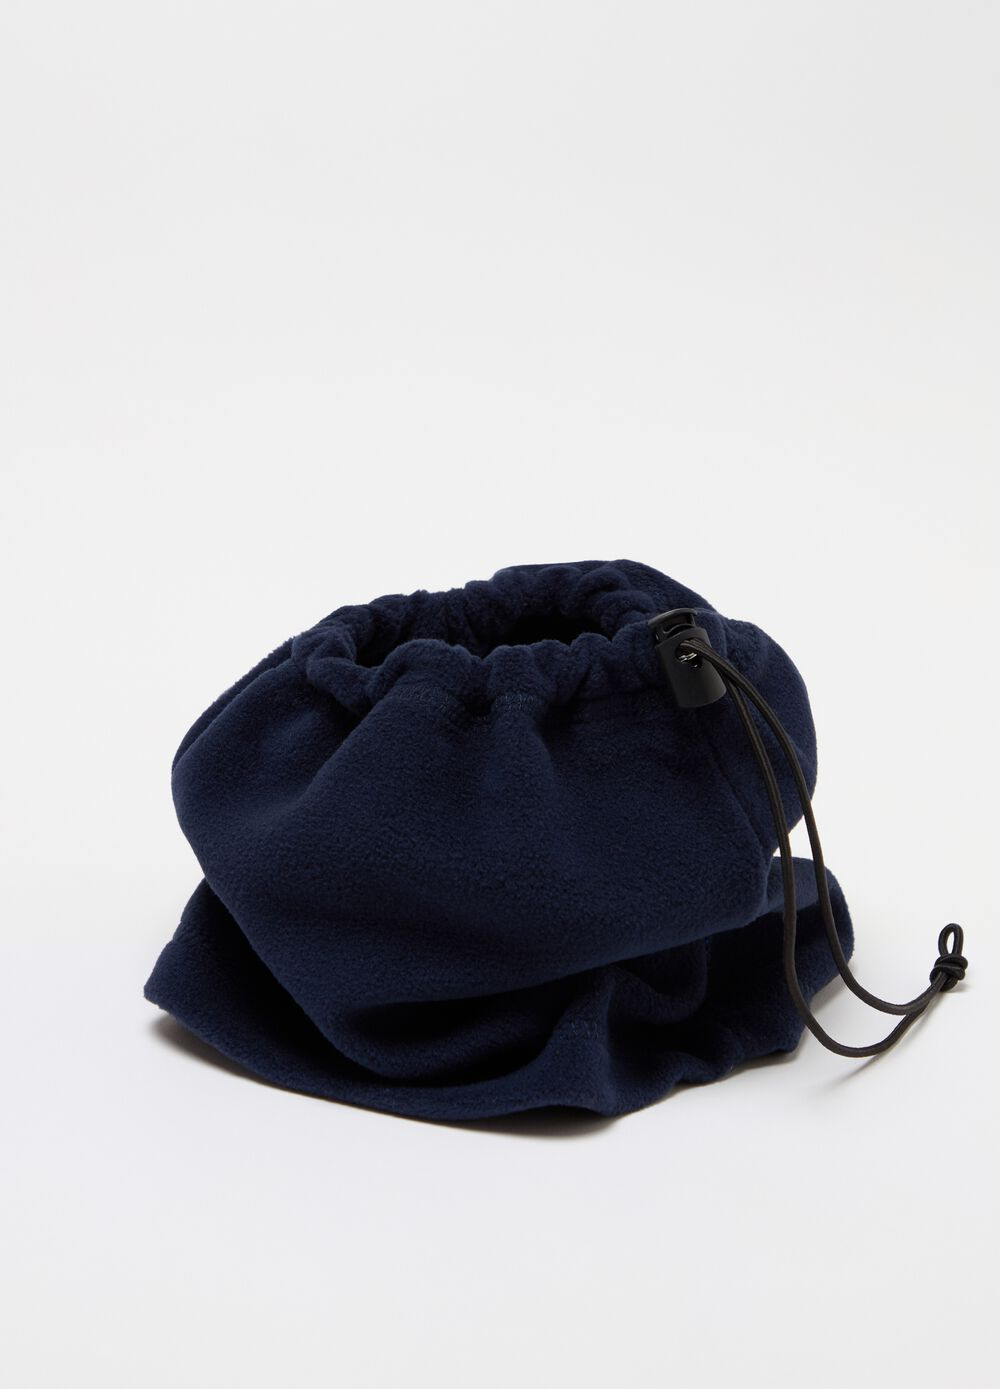 Sustainable fleece neck warmer with drawstring